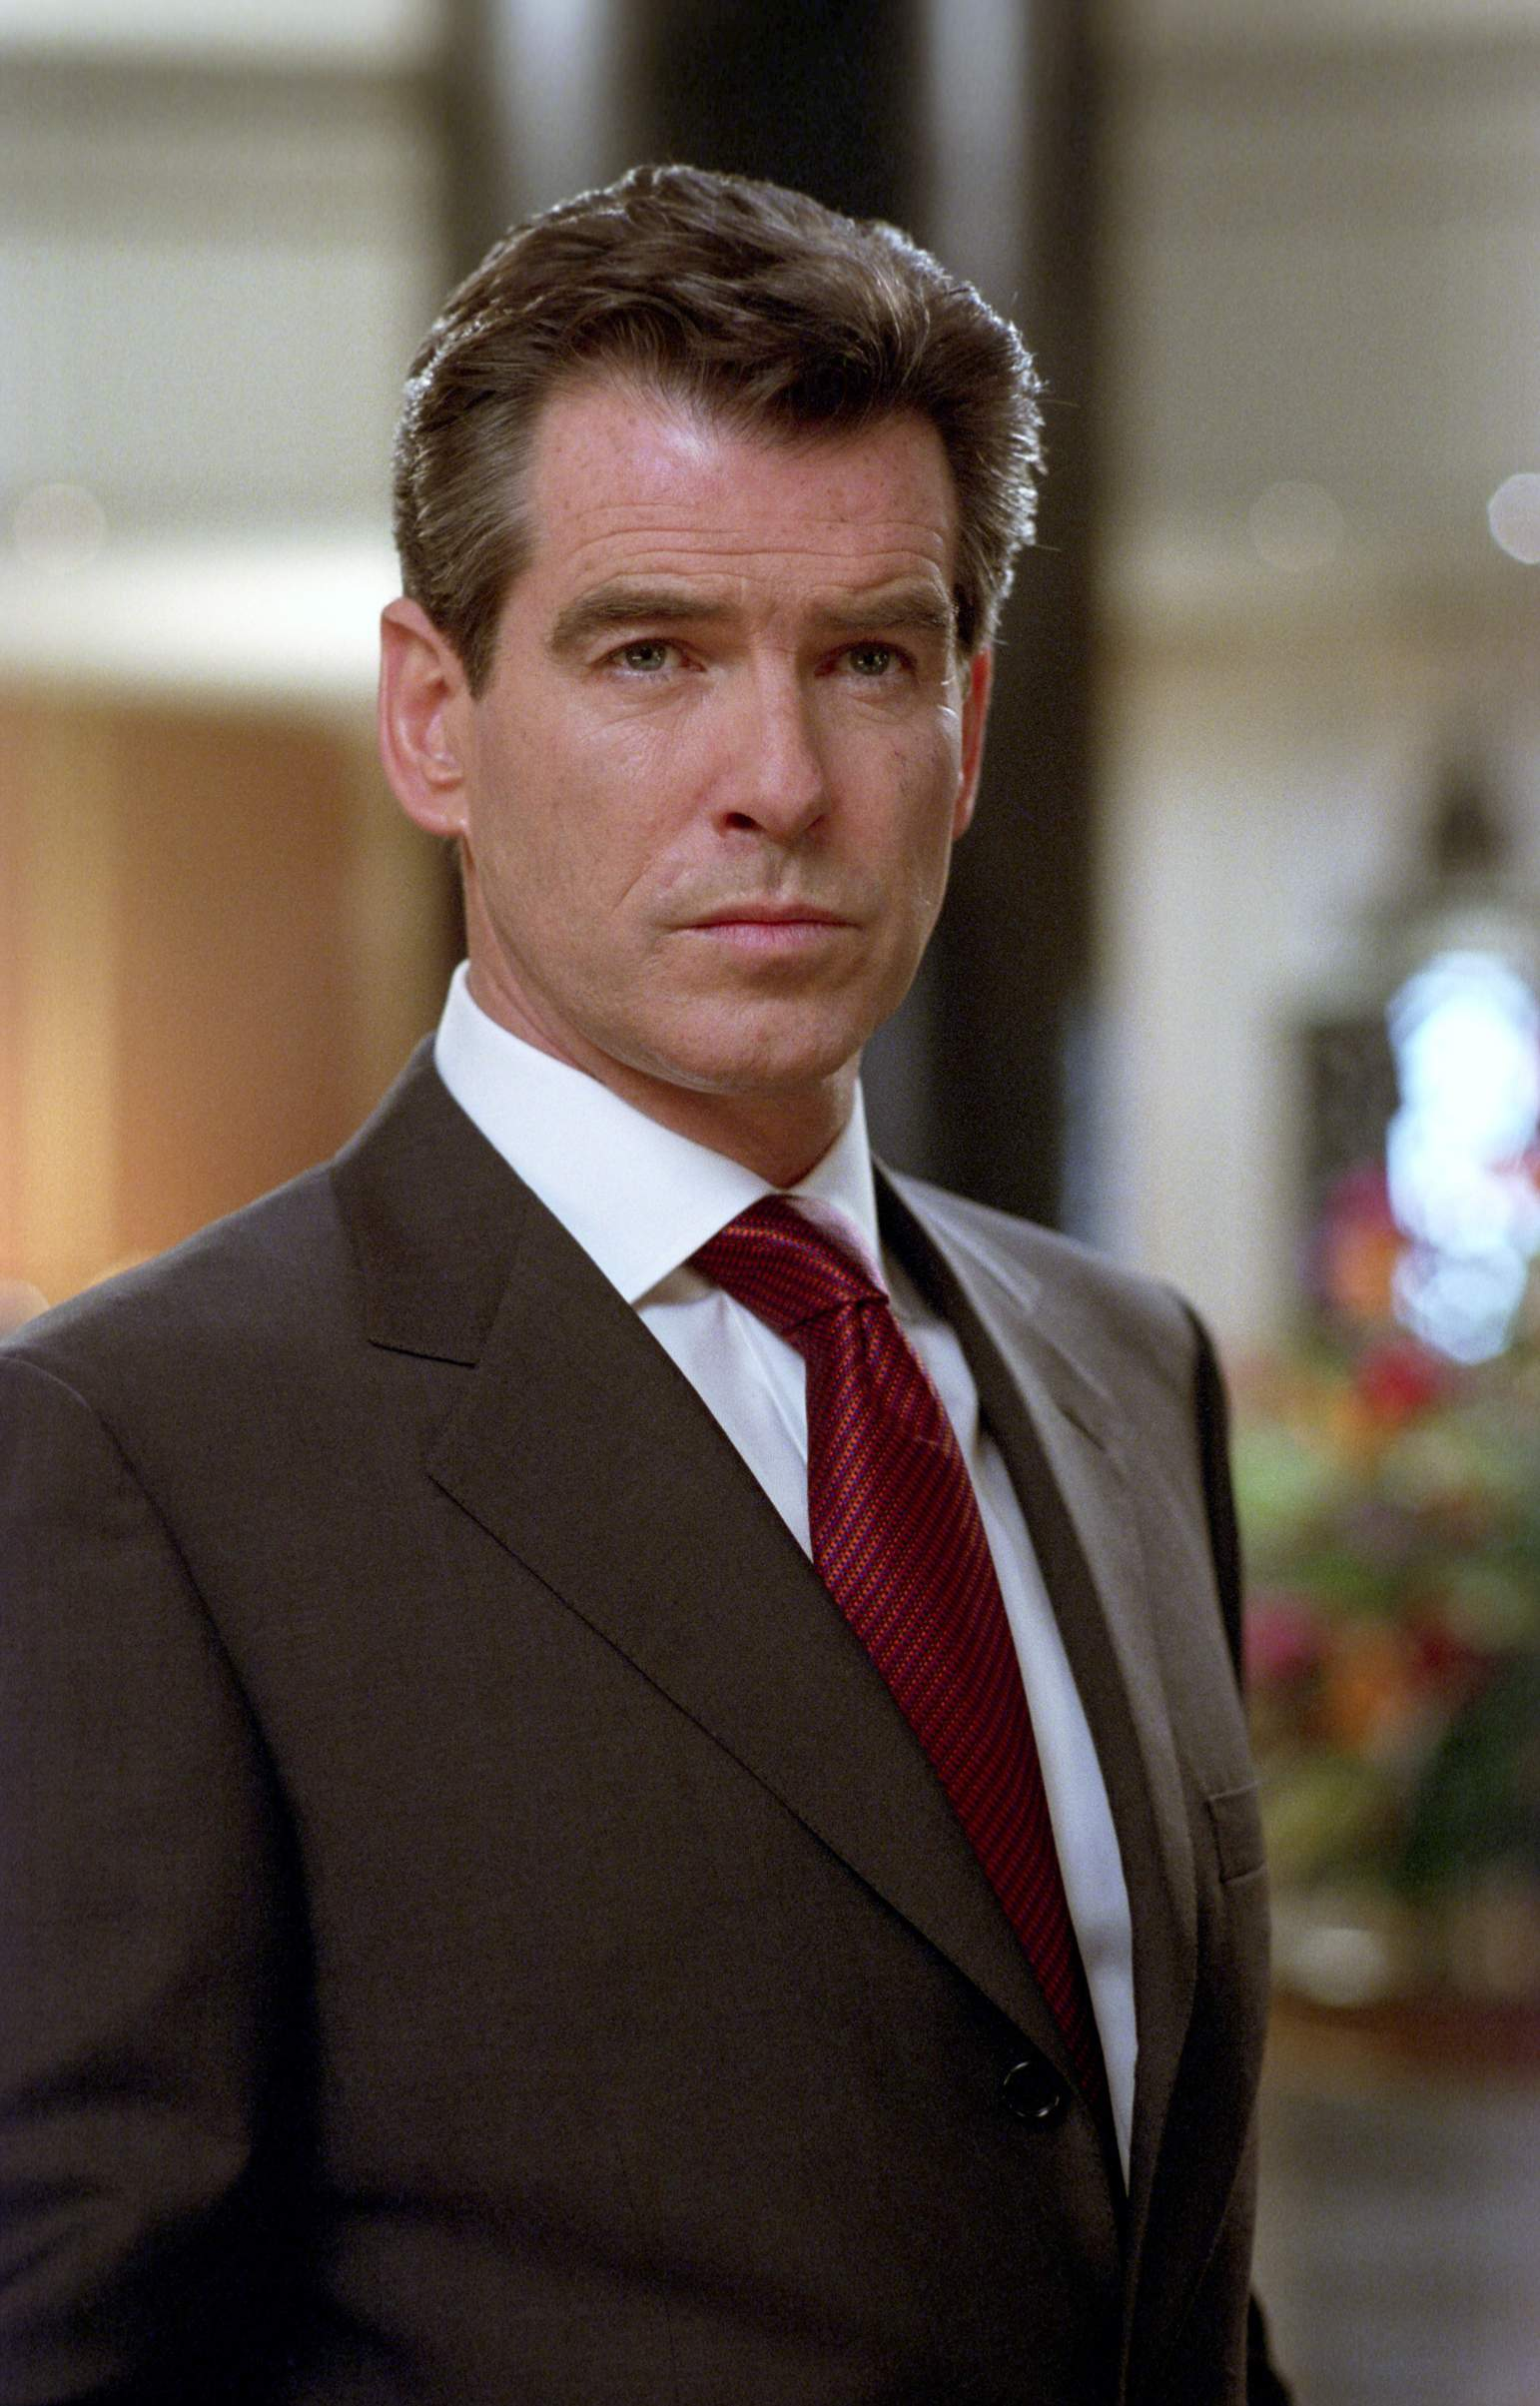 Pierce Brosnan photo 43 of 95 pics wallpaper  photo 246605  ThePlace2